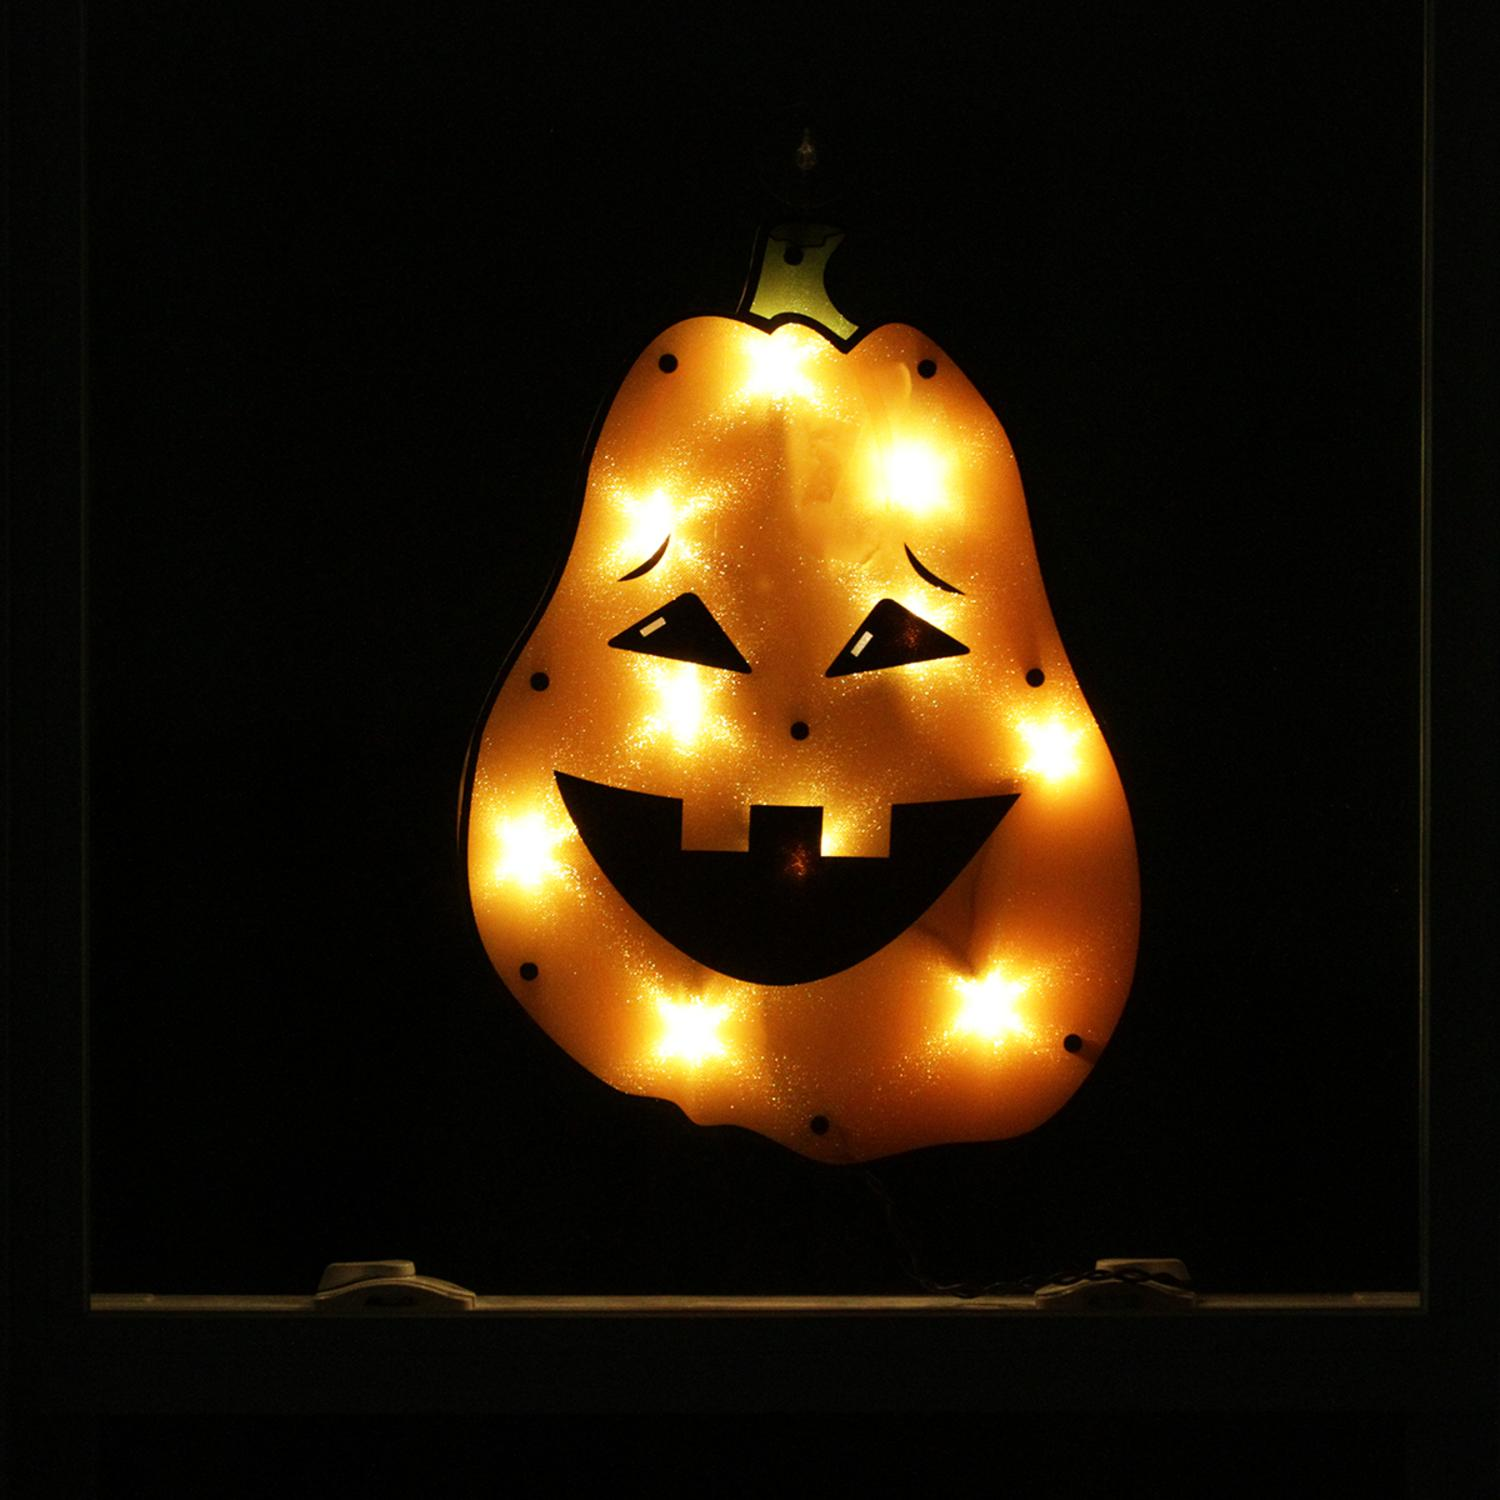 17 lighted tall jack o lantern pumpkin halloween window silhouette decoration